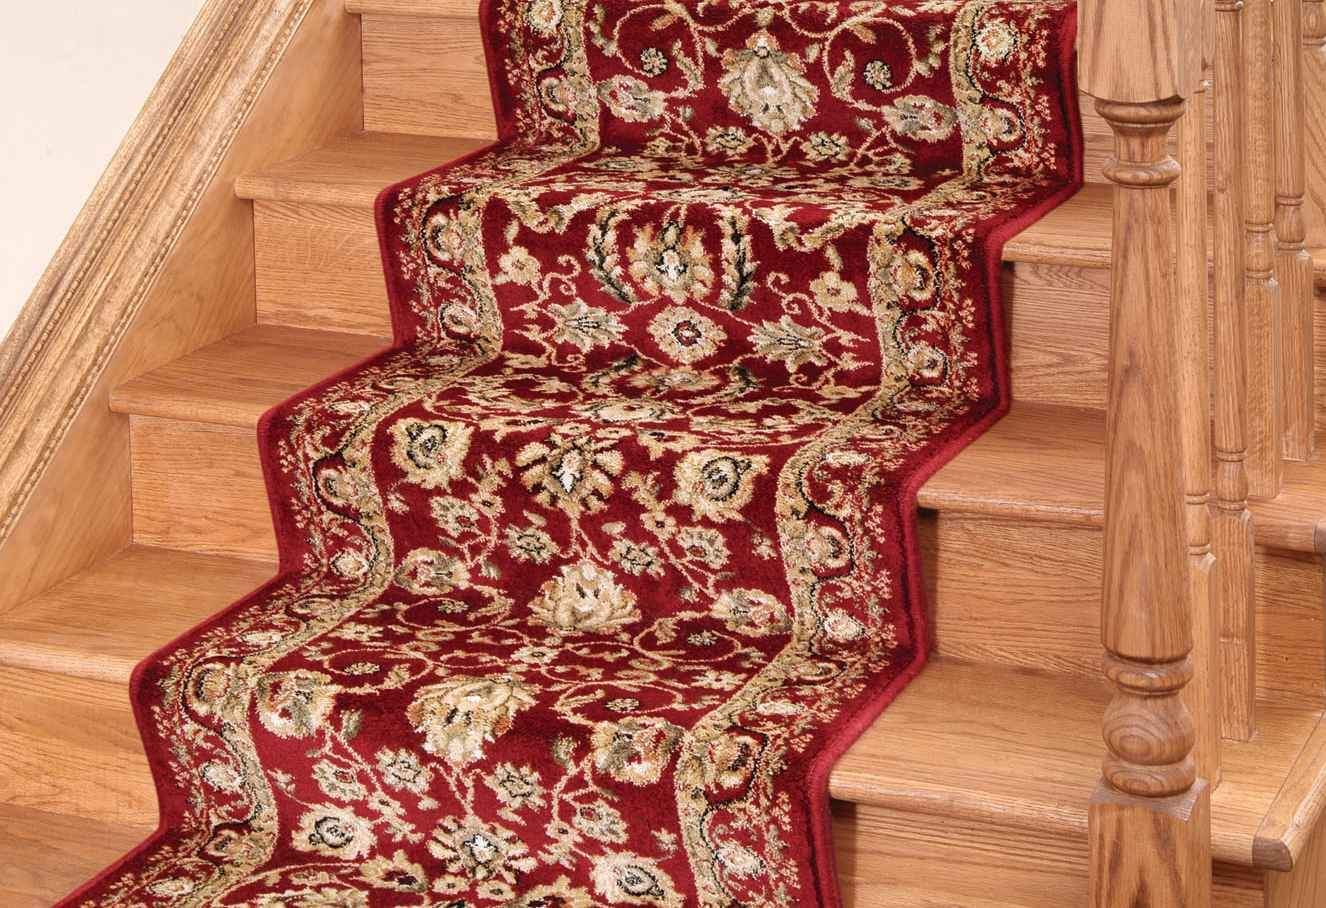 Carpet Stair Runner Roll For Home   Carpet Stair Runners By The Foot